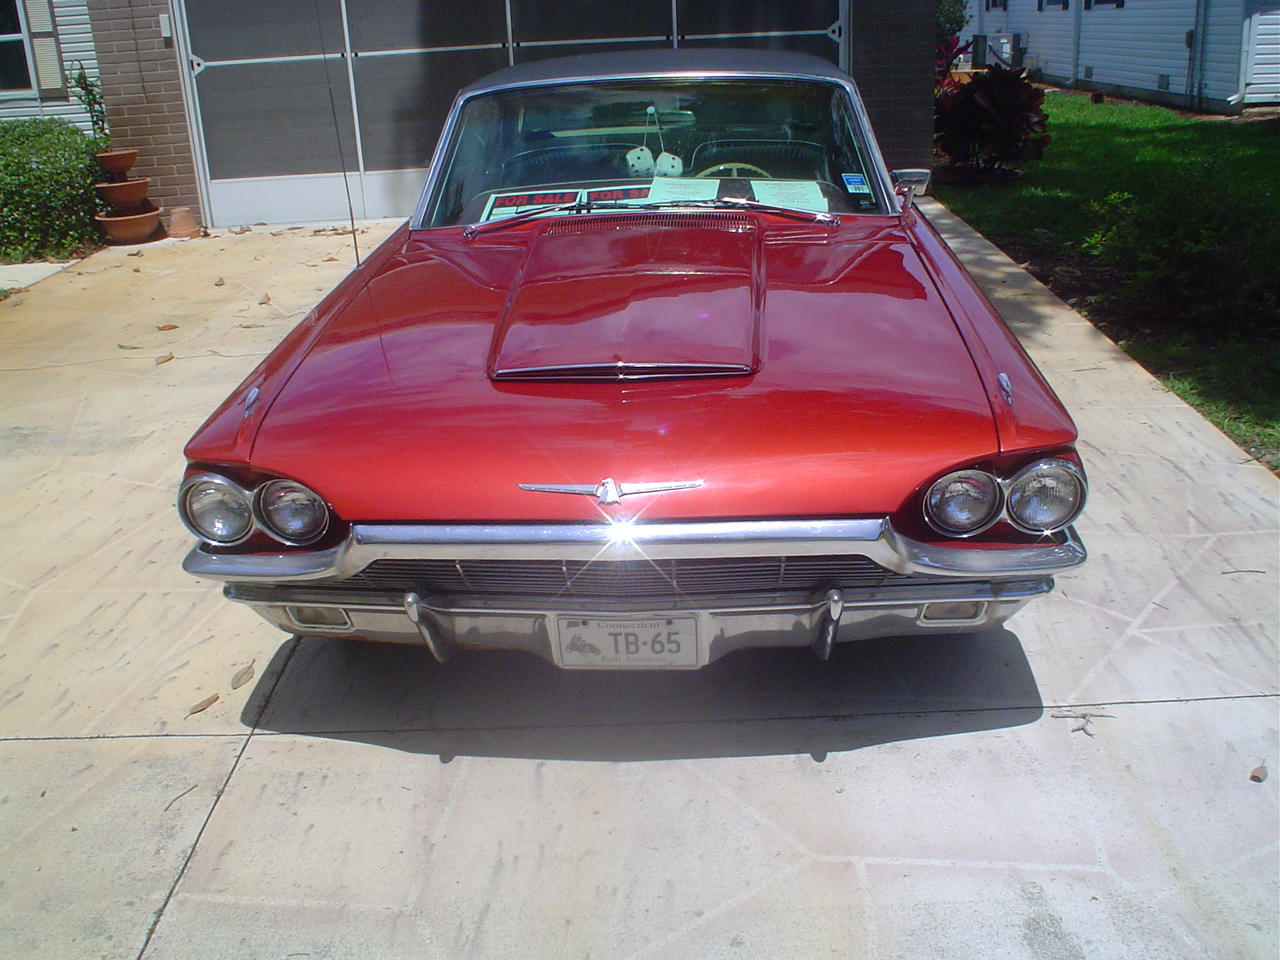 2013 ford thunderbird price autos post. Cars Review. Best American Auto & Cars Review